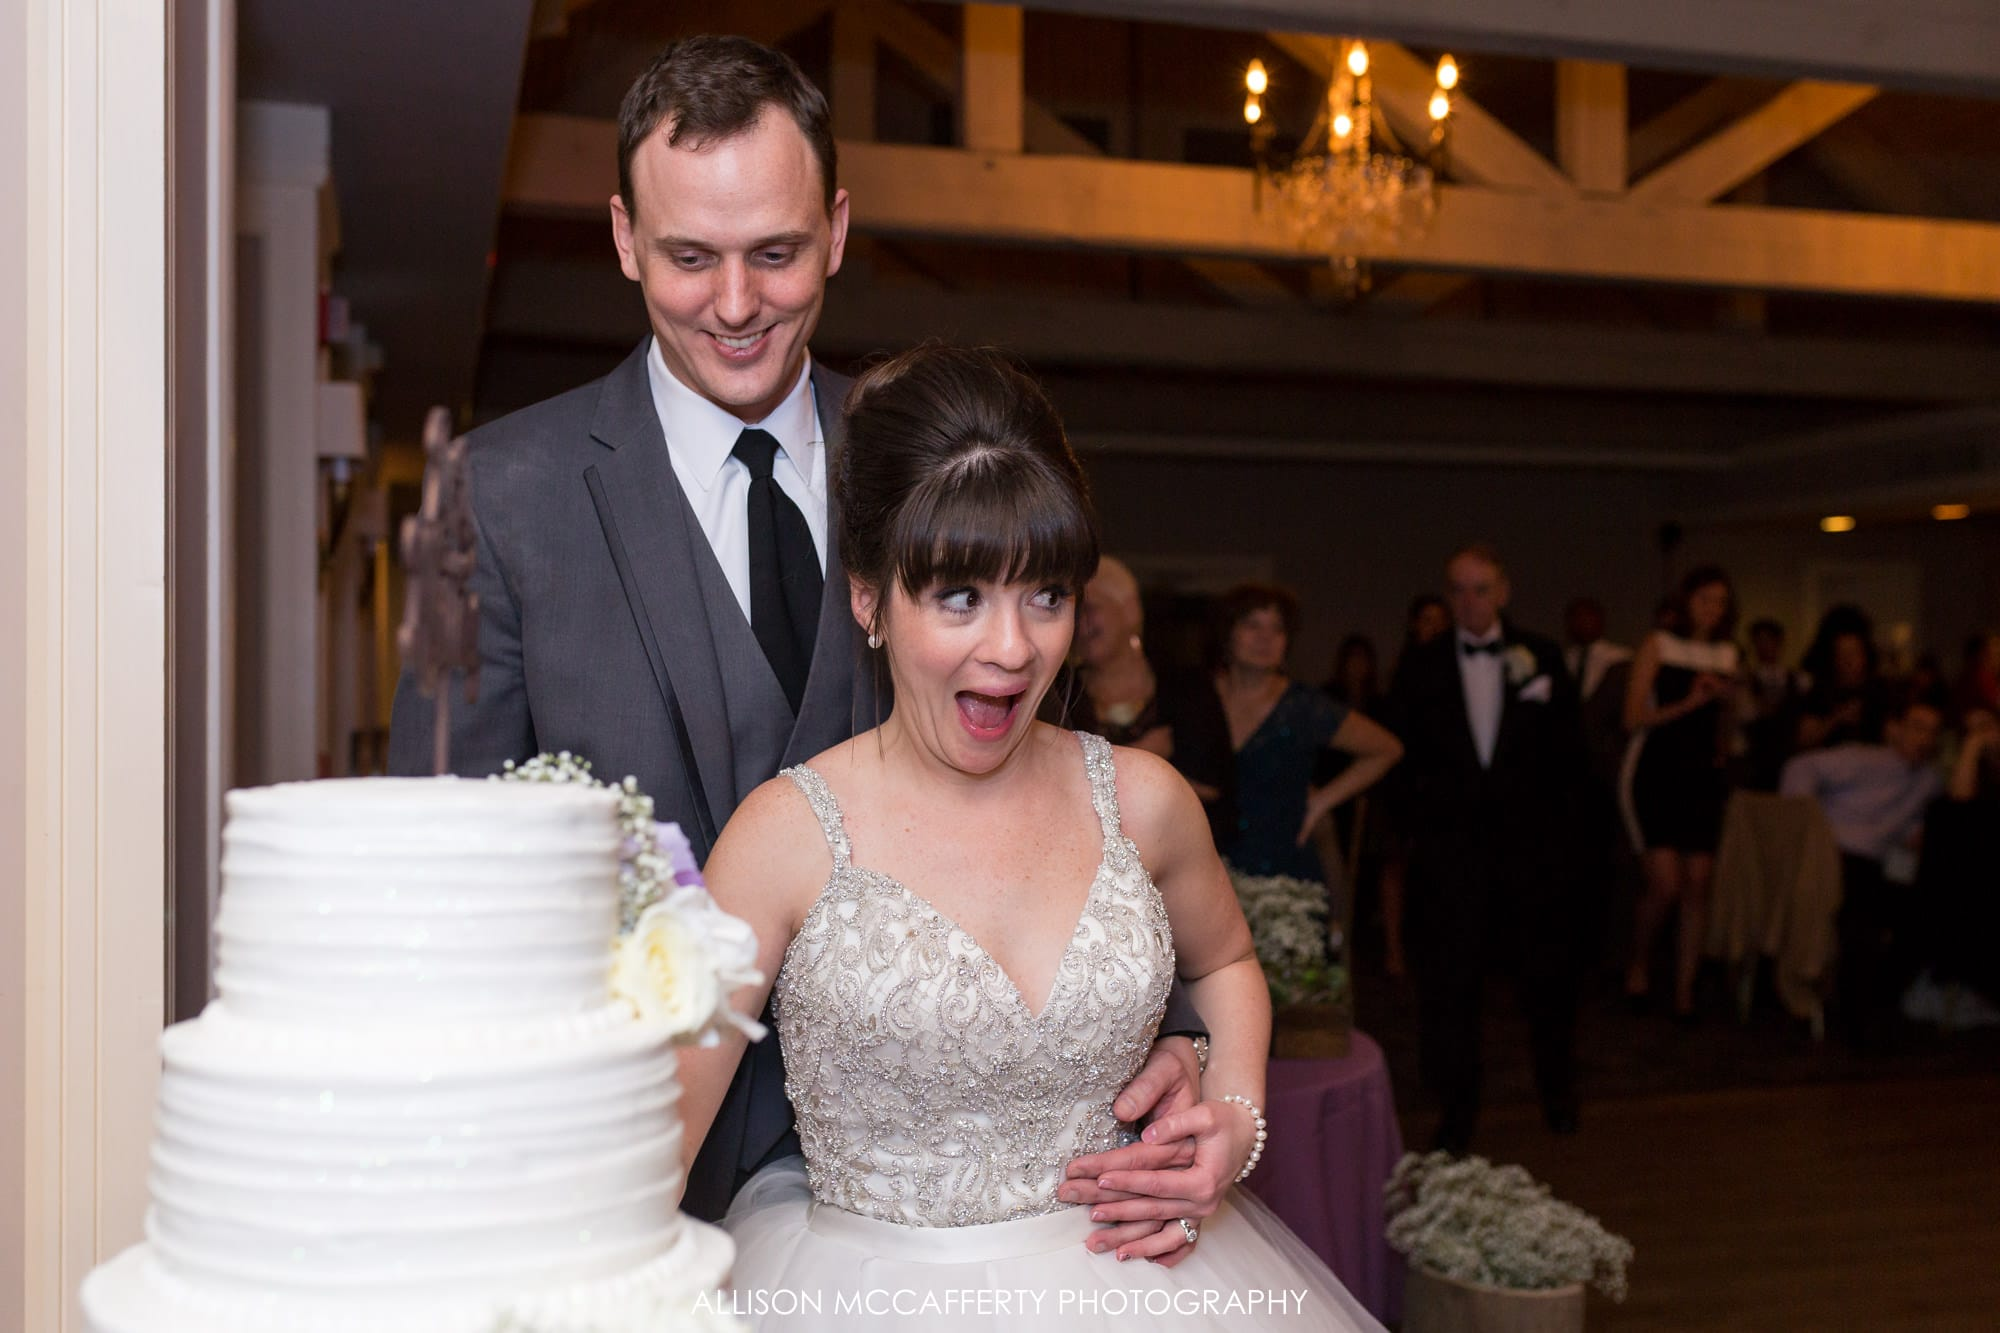 Fun wedding cake cutting photos Blue Heron Pines Wedding Photographer